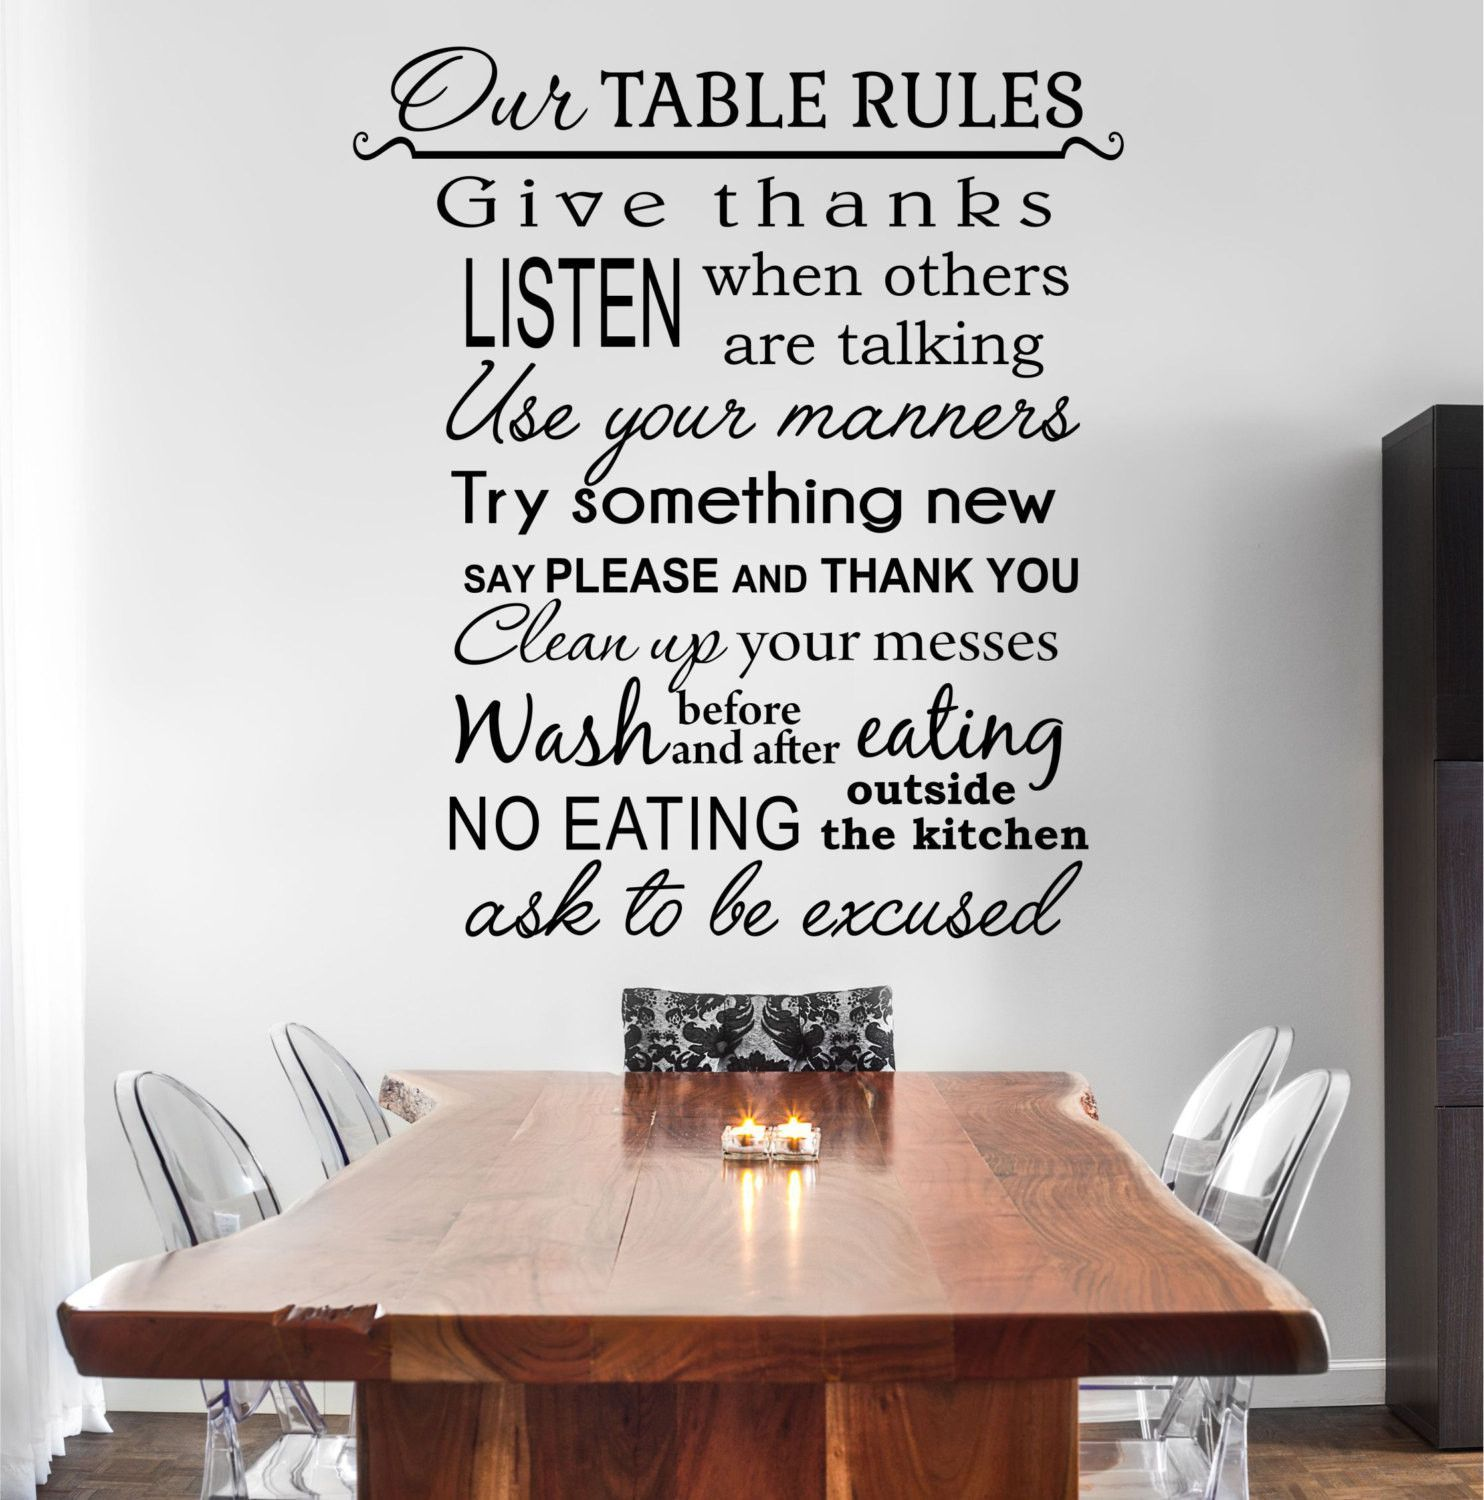 Our Table Rules Kitchen Quote Vinyl Wall Decal Sticker 24 Wide X